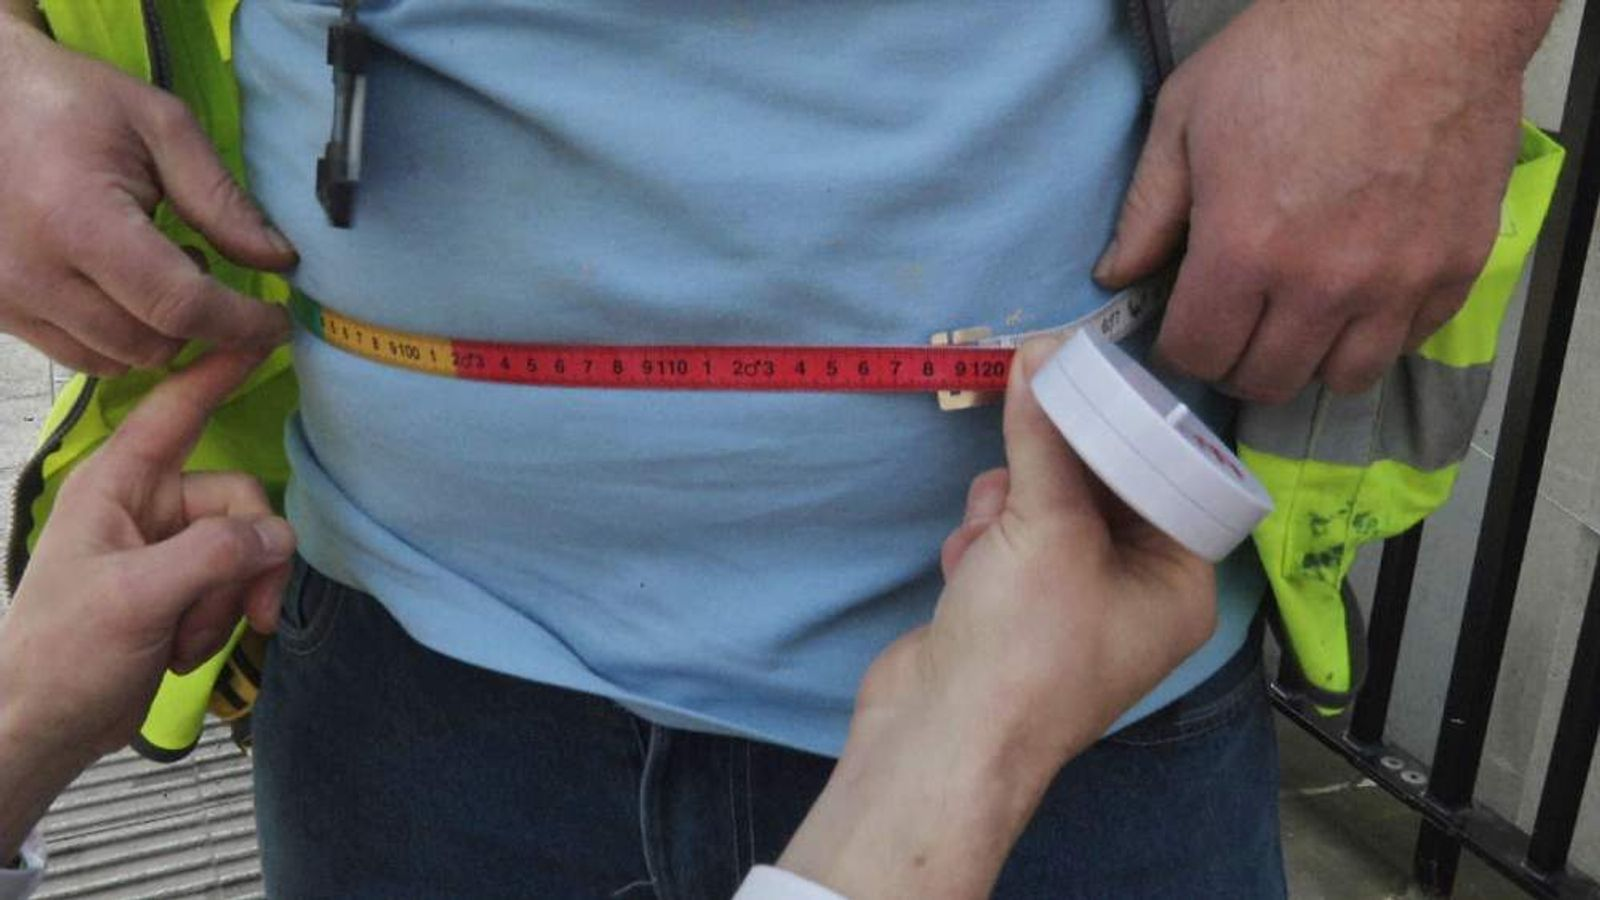 A waistline measured by tape measure